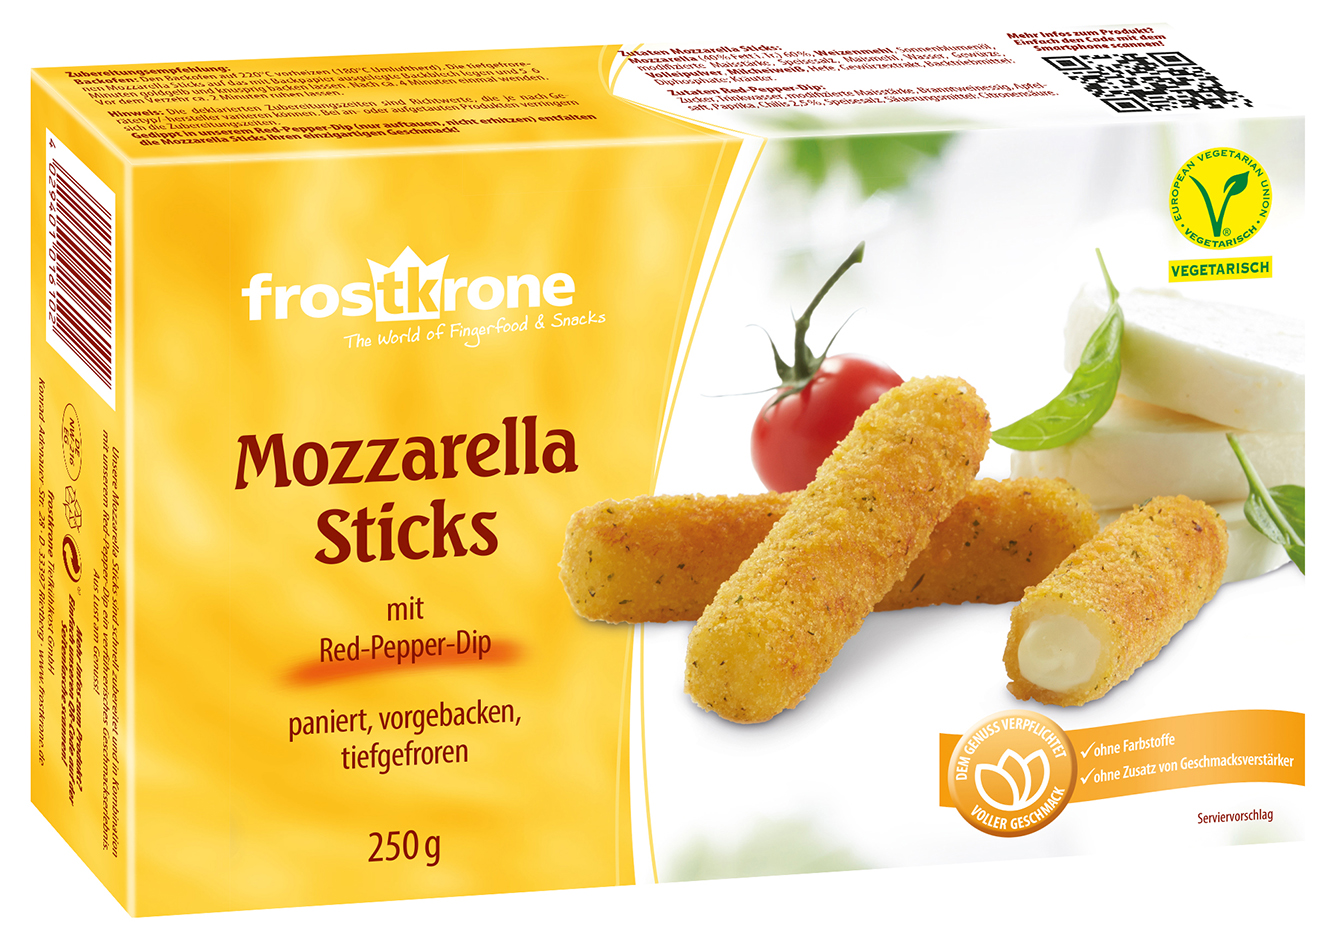 Baked Mozzarella Wonton Bites Made Pick N Save Ingredients likewise Antipasti Platter Recipes moreover Behold French Fry Stuffed Fat Sandwiches From Ru Hungry In New Brunswick Nj likewise Papaya Popsicles as well 337412. on recipe for mozzarella sticks